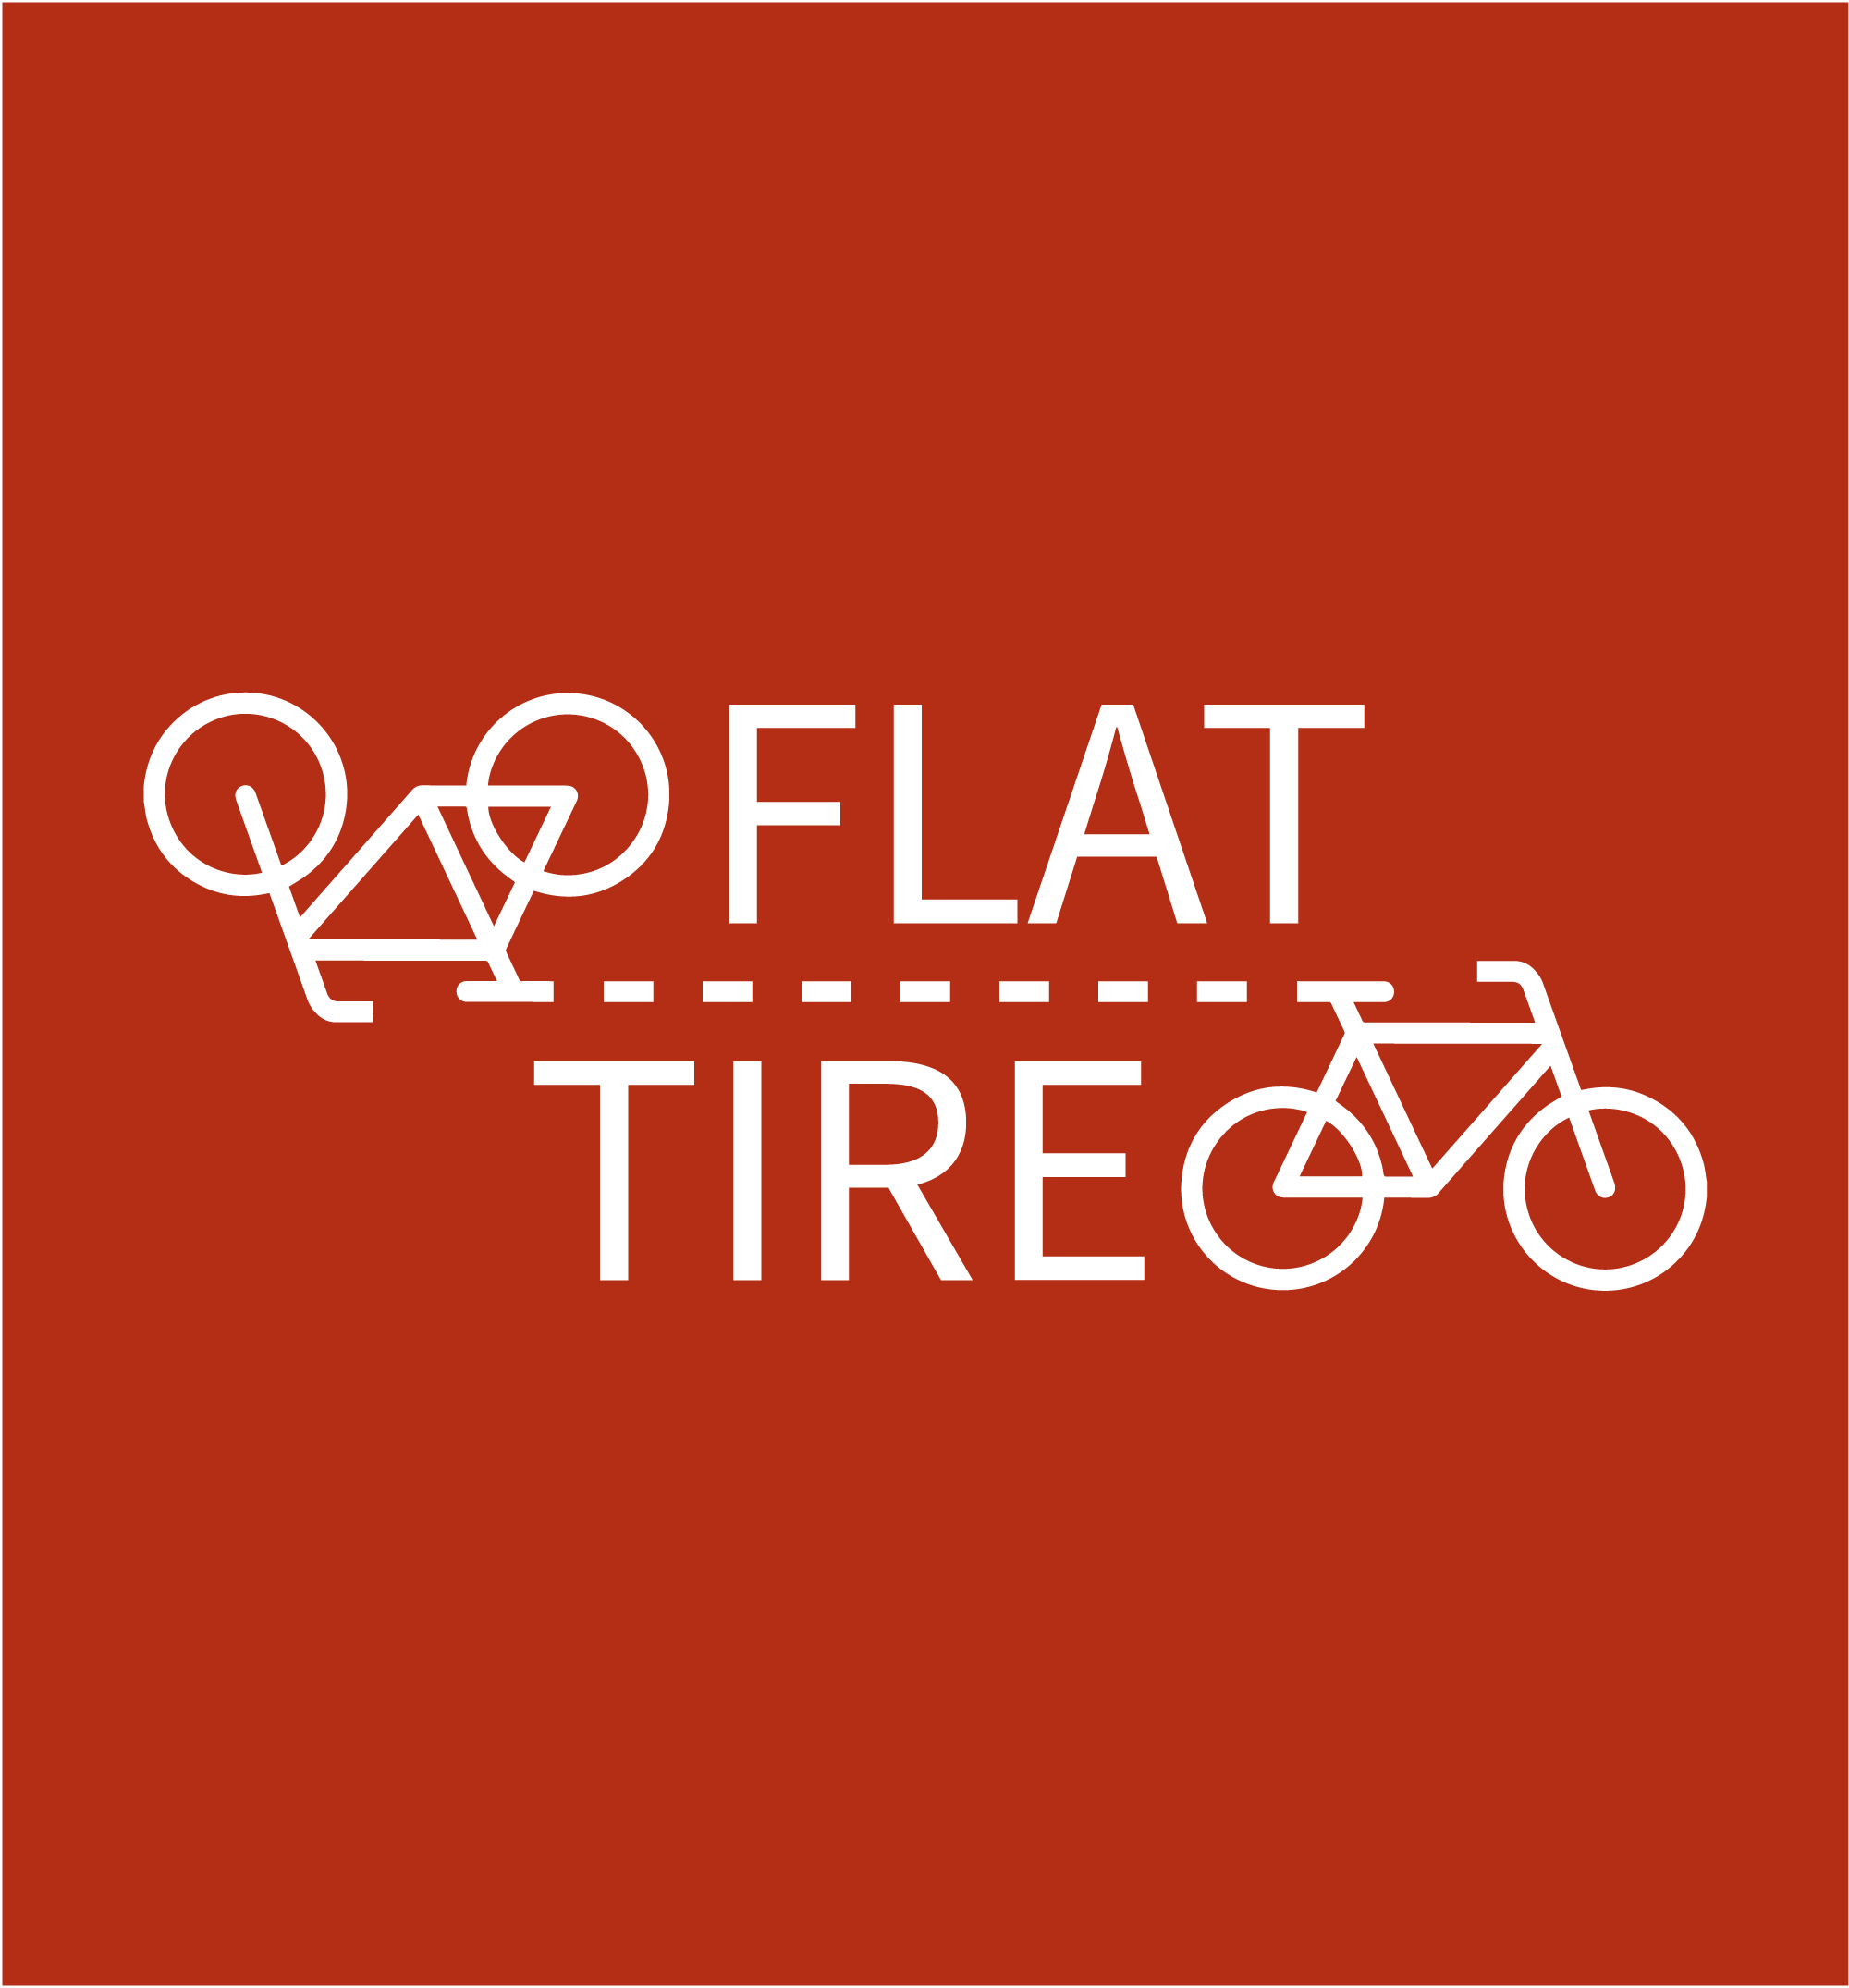 Flat tires won't get you anywhere.